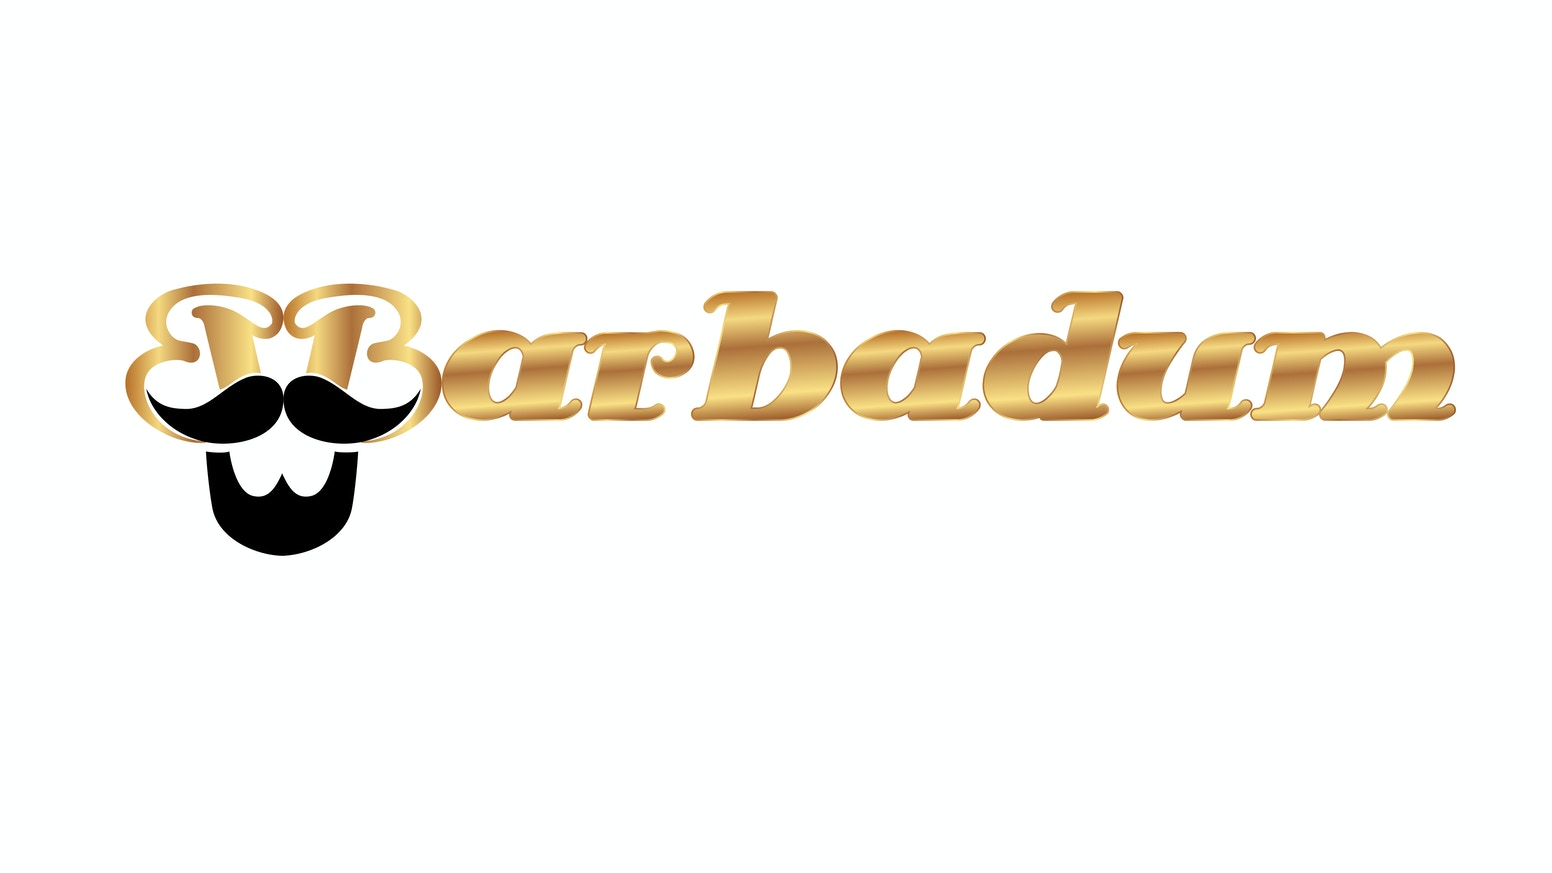 Barbadum Books will start with my titles, and expand to the works of others. Barbadum is Latin for Bearded so let's see how it grows.